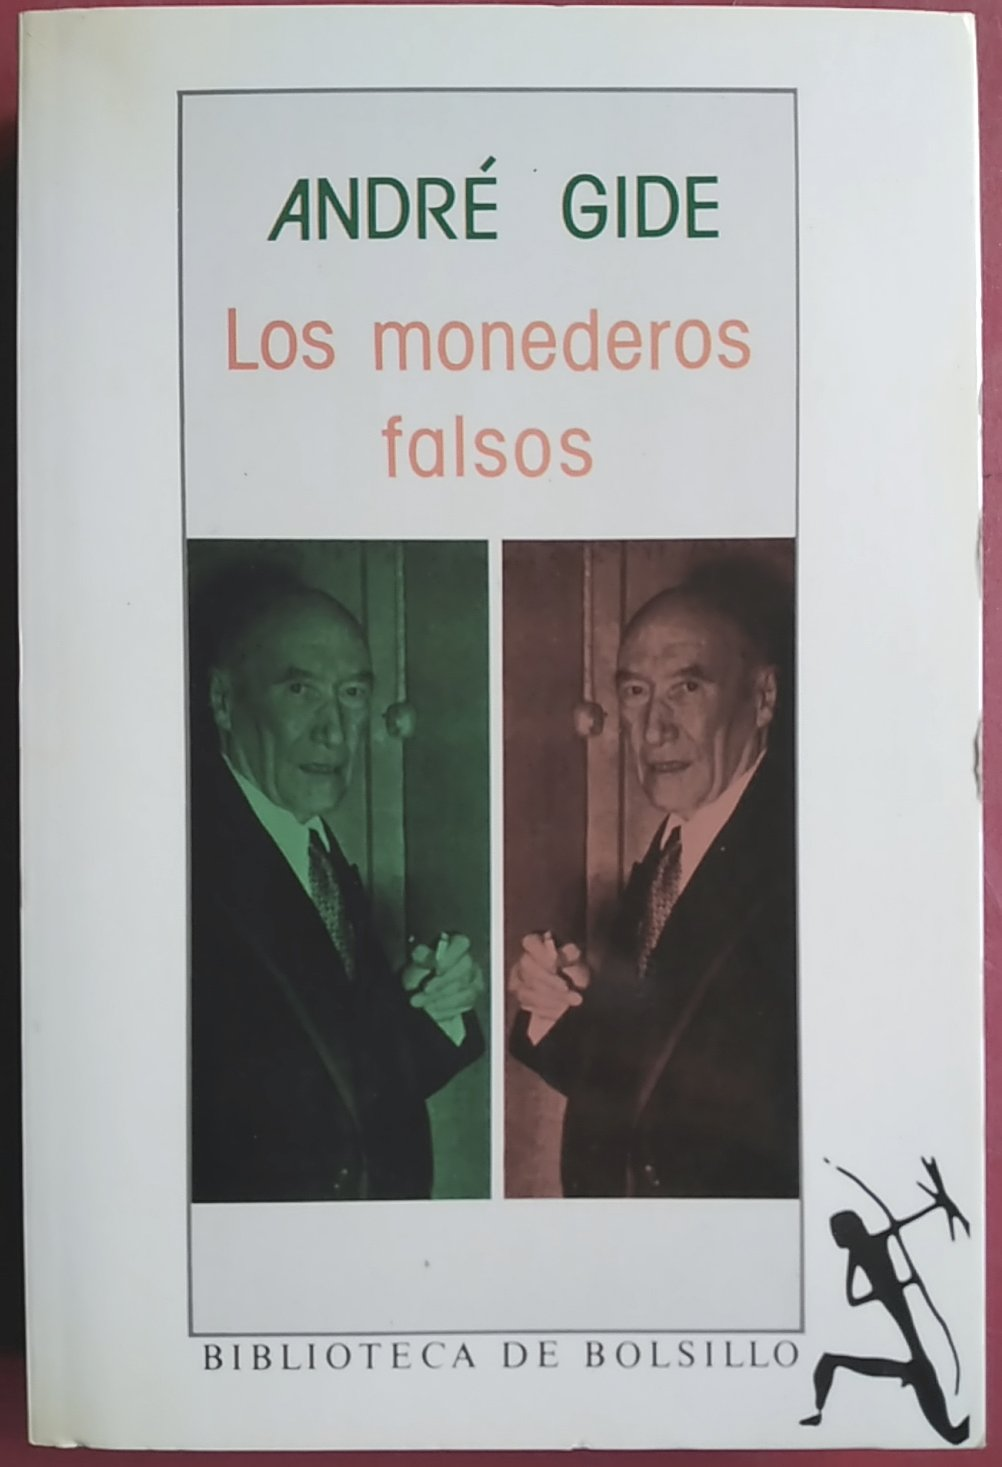 Monederos falsos, los: Amazon.es: Andre Gide: Libros